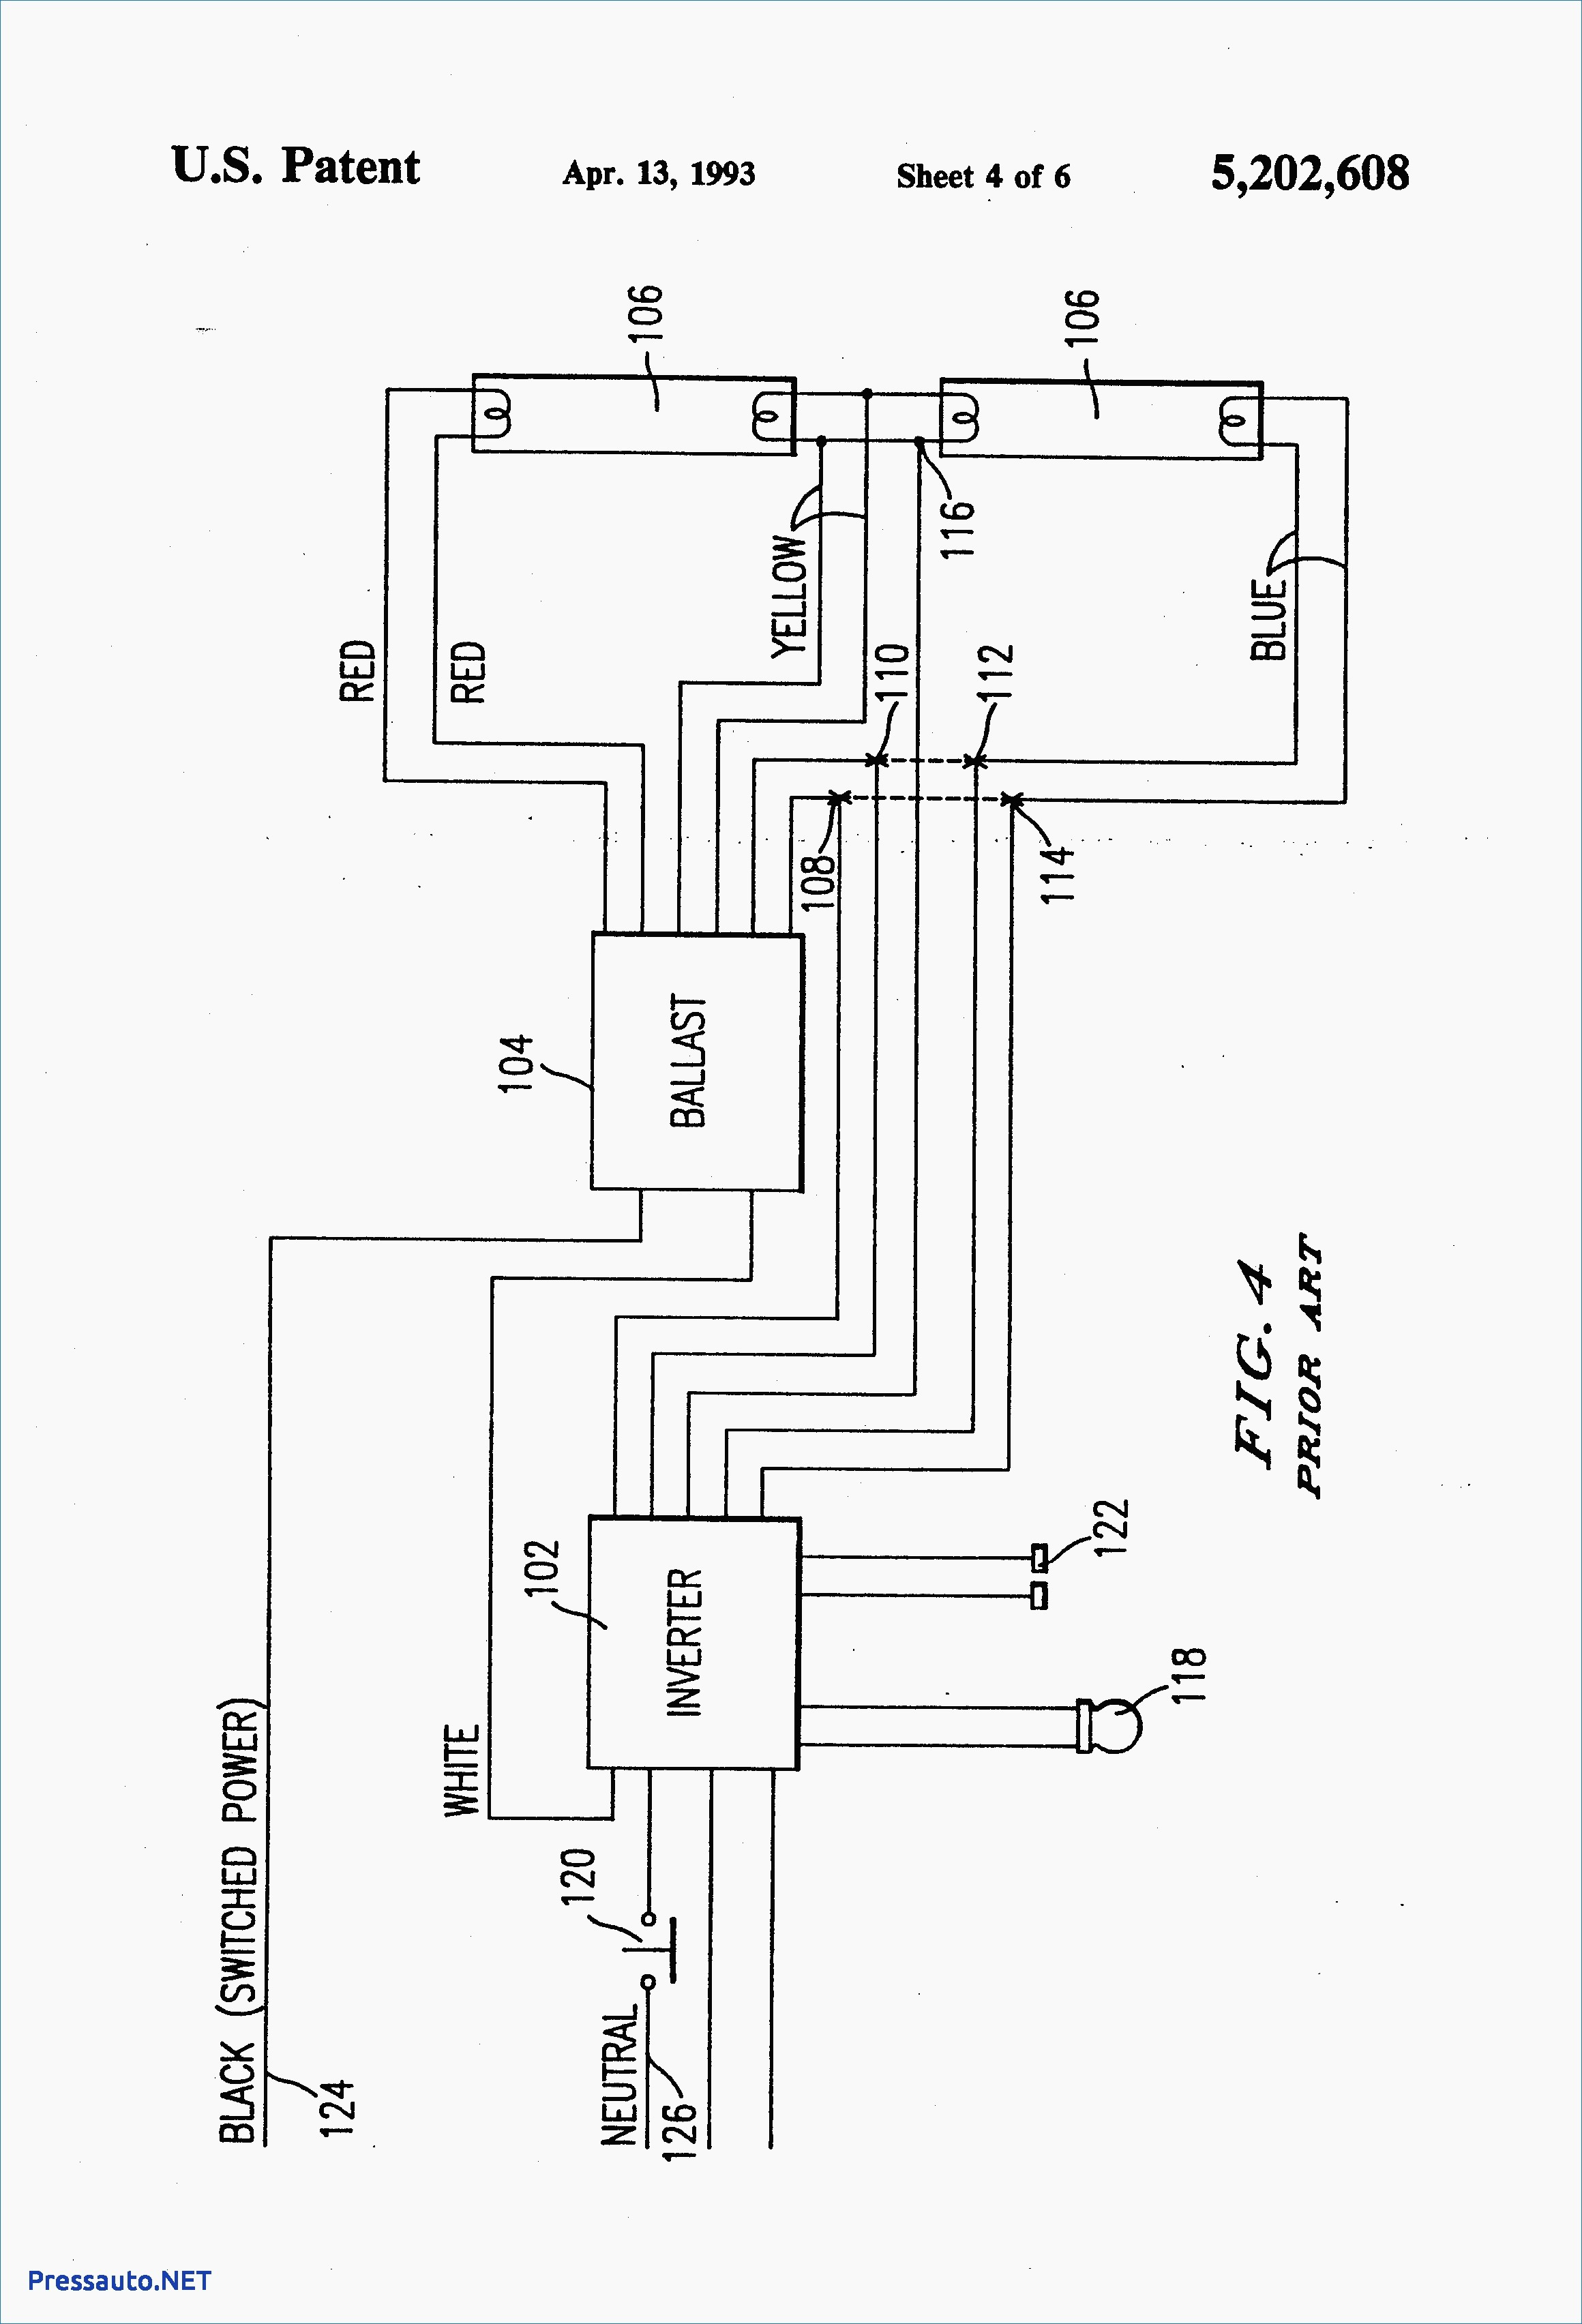 Lighting Contactor Wiring Diagram Photocell Sn 2694] Cell Wiring Diagram Intermatic Time Clock Of Lighting Contactor Wiring Diagram Photocell